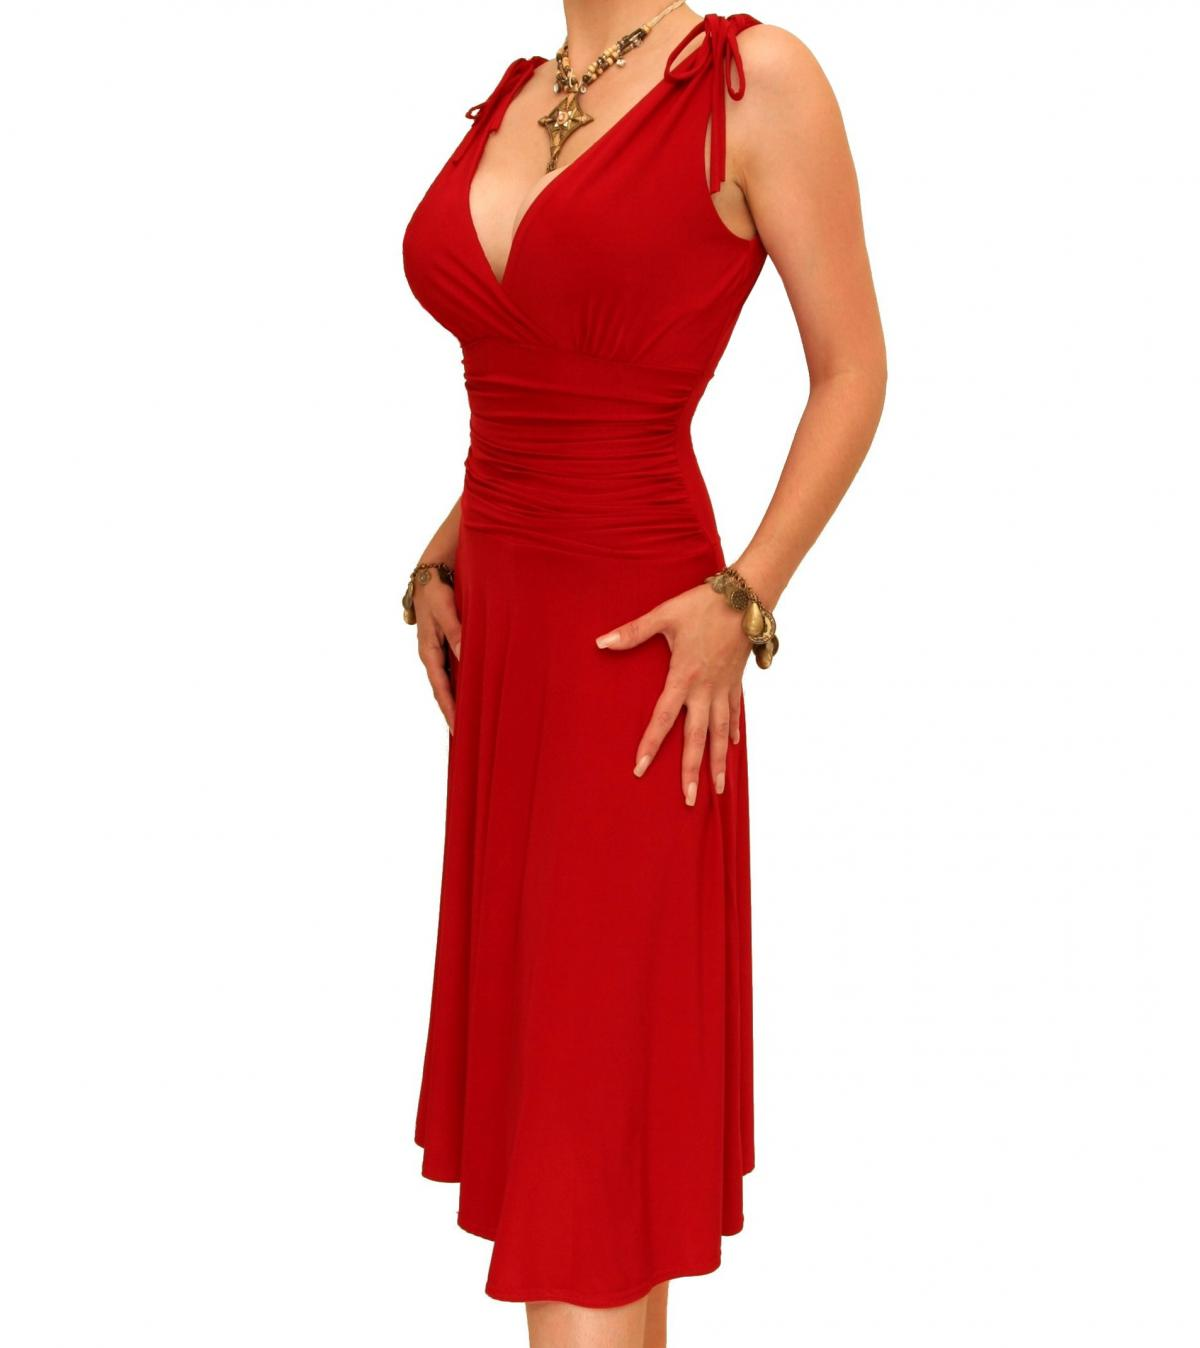 Red Grecian Style Dress